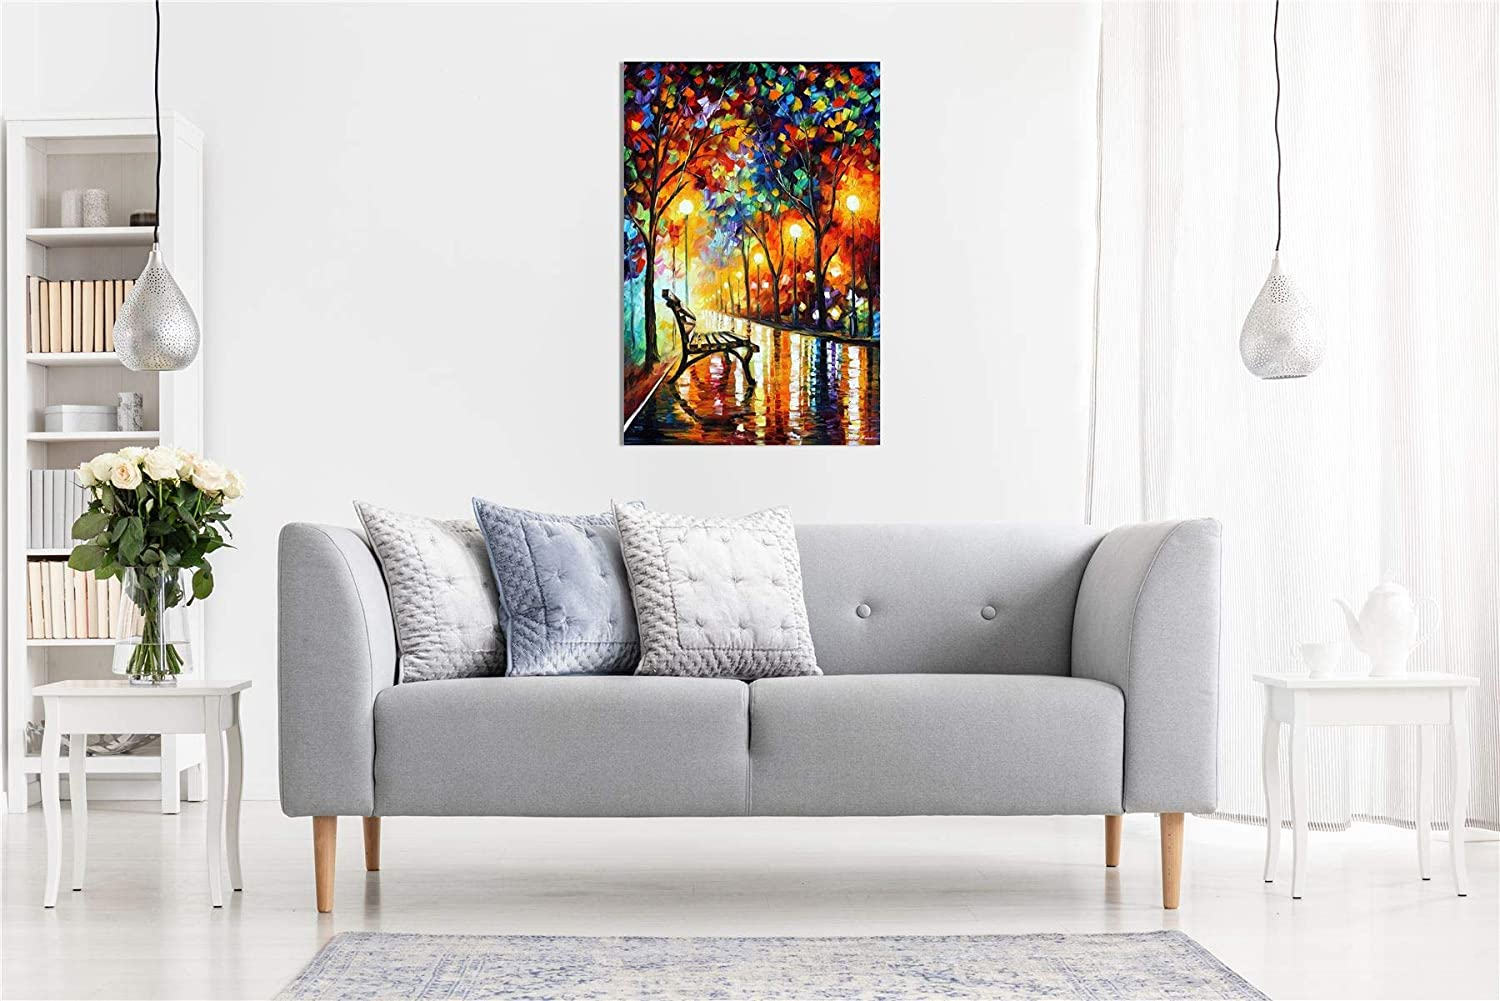 Print On Canvas Loneliness of Autumn by Leonid Afremov Canvas Wall Art Picture Print for Home Decor 60x90cm 23.6x35.4 inch No Frame